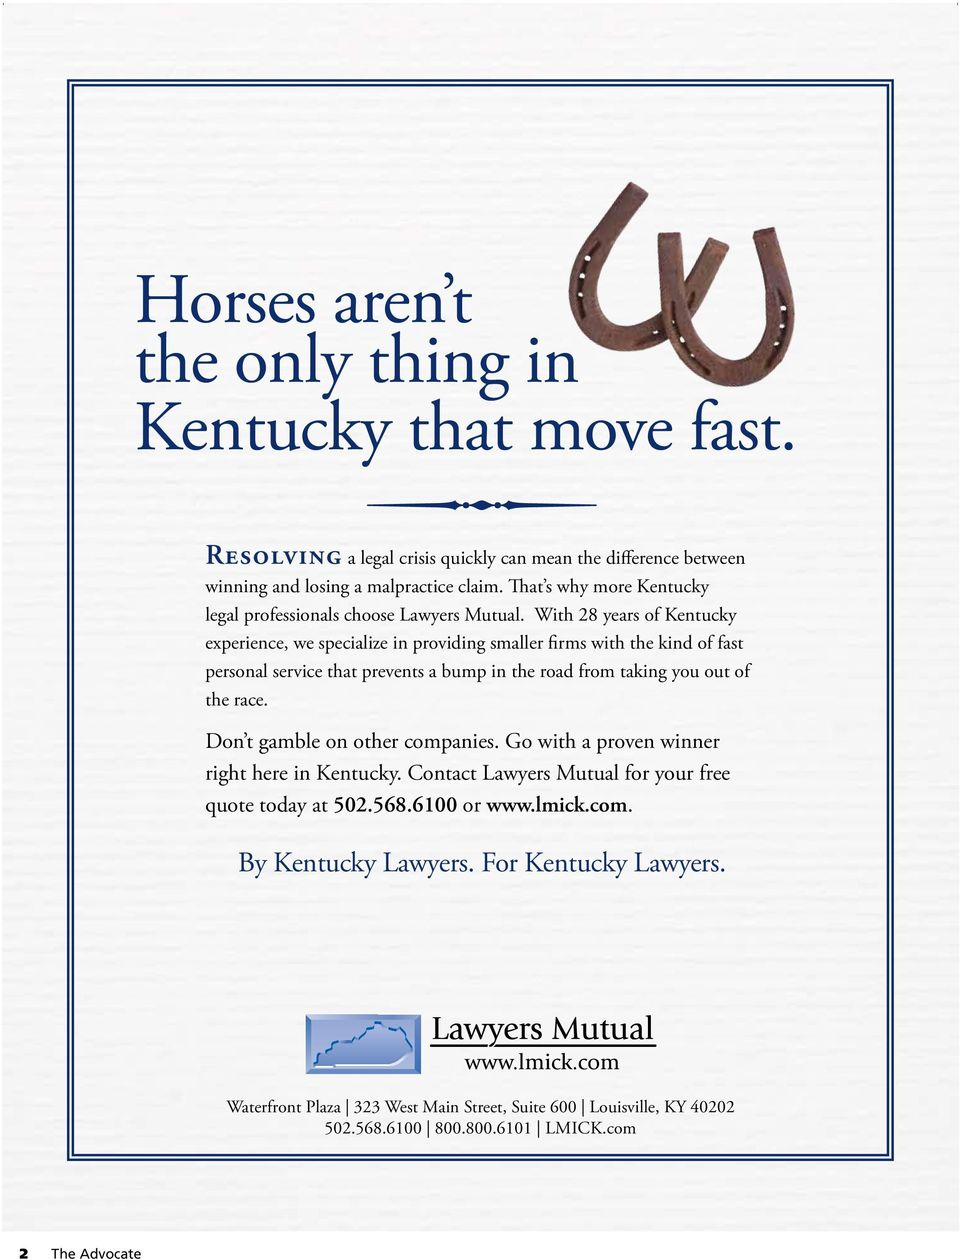 With 28 years of Kentucky experience, we specialize in providing smaller firms with the kind of fast personal service that prevents a bump in the road from taking you out of the race.